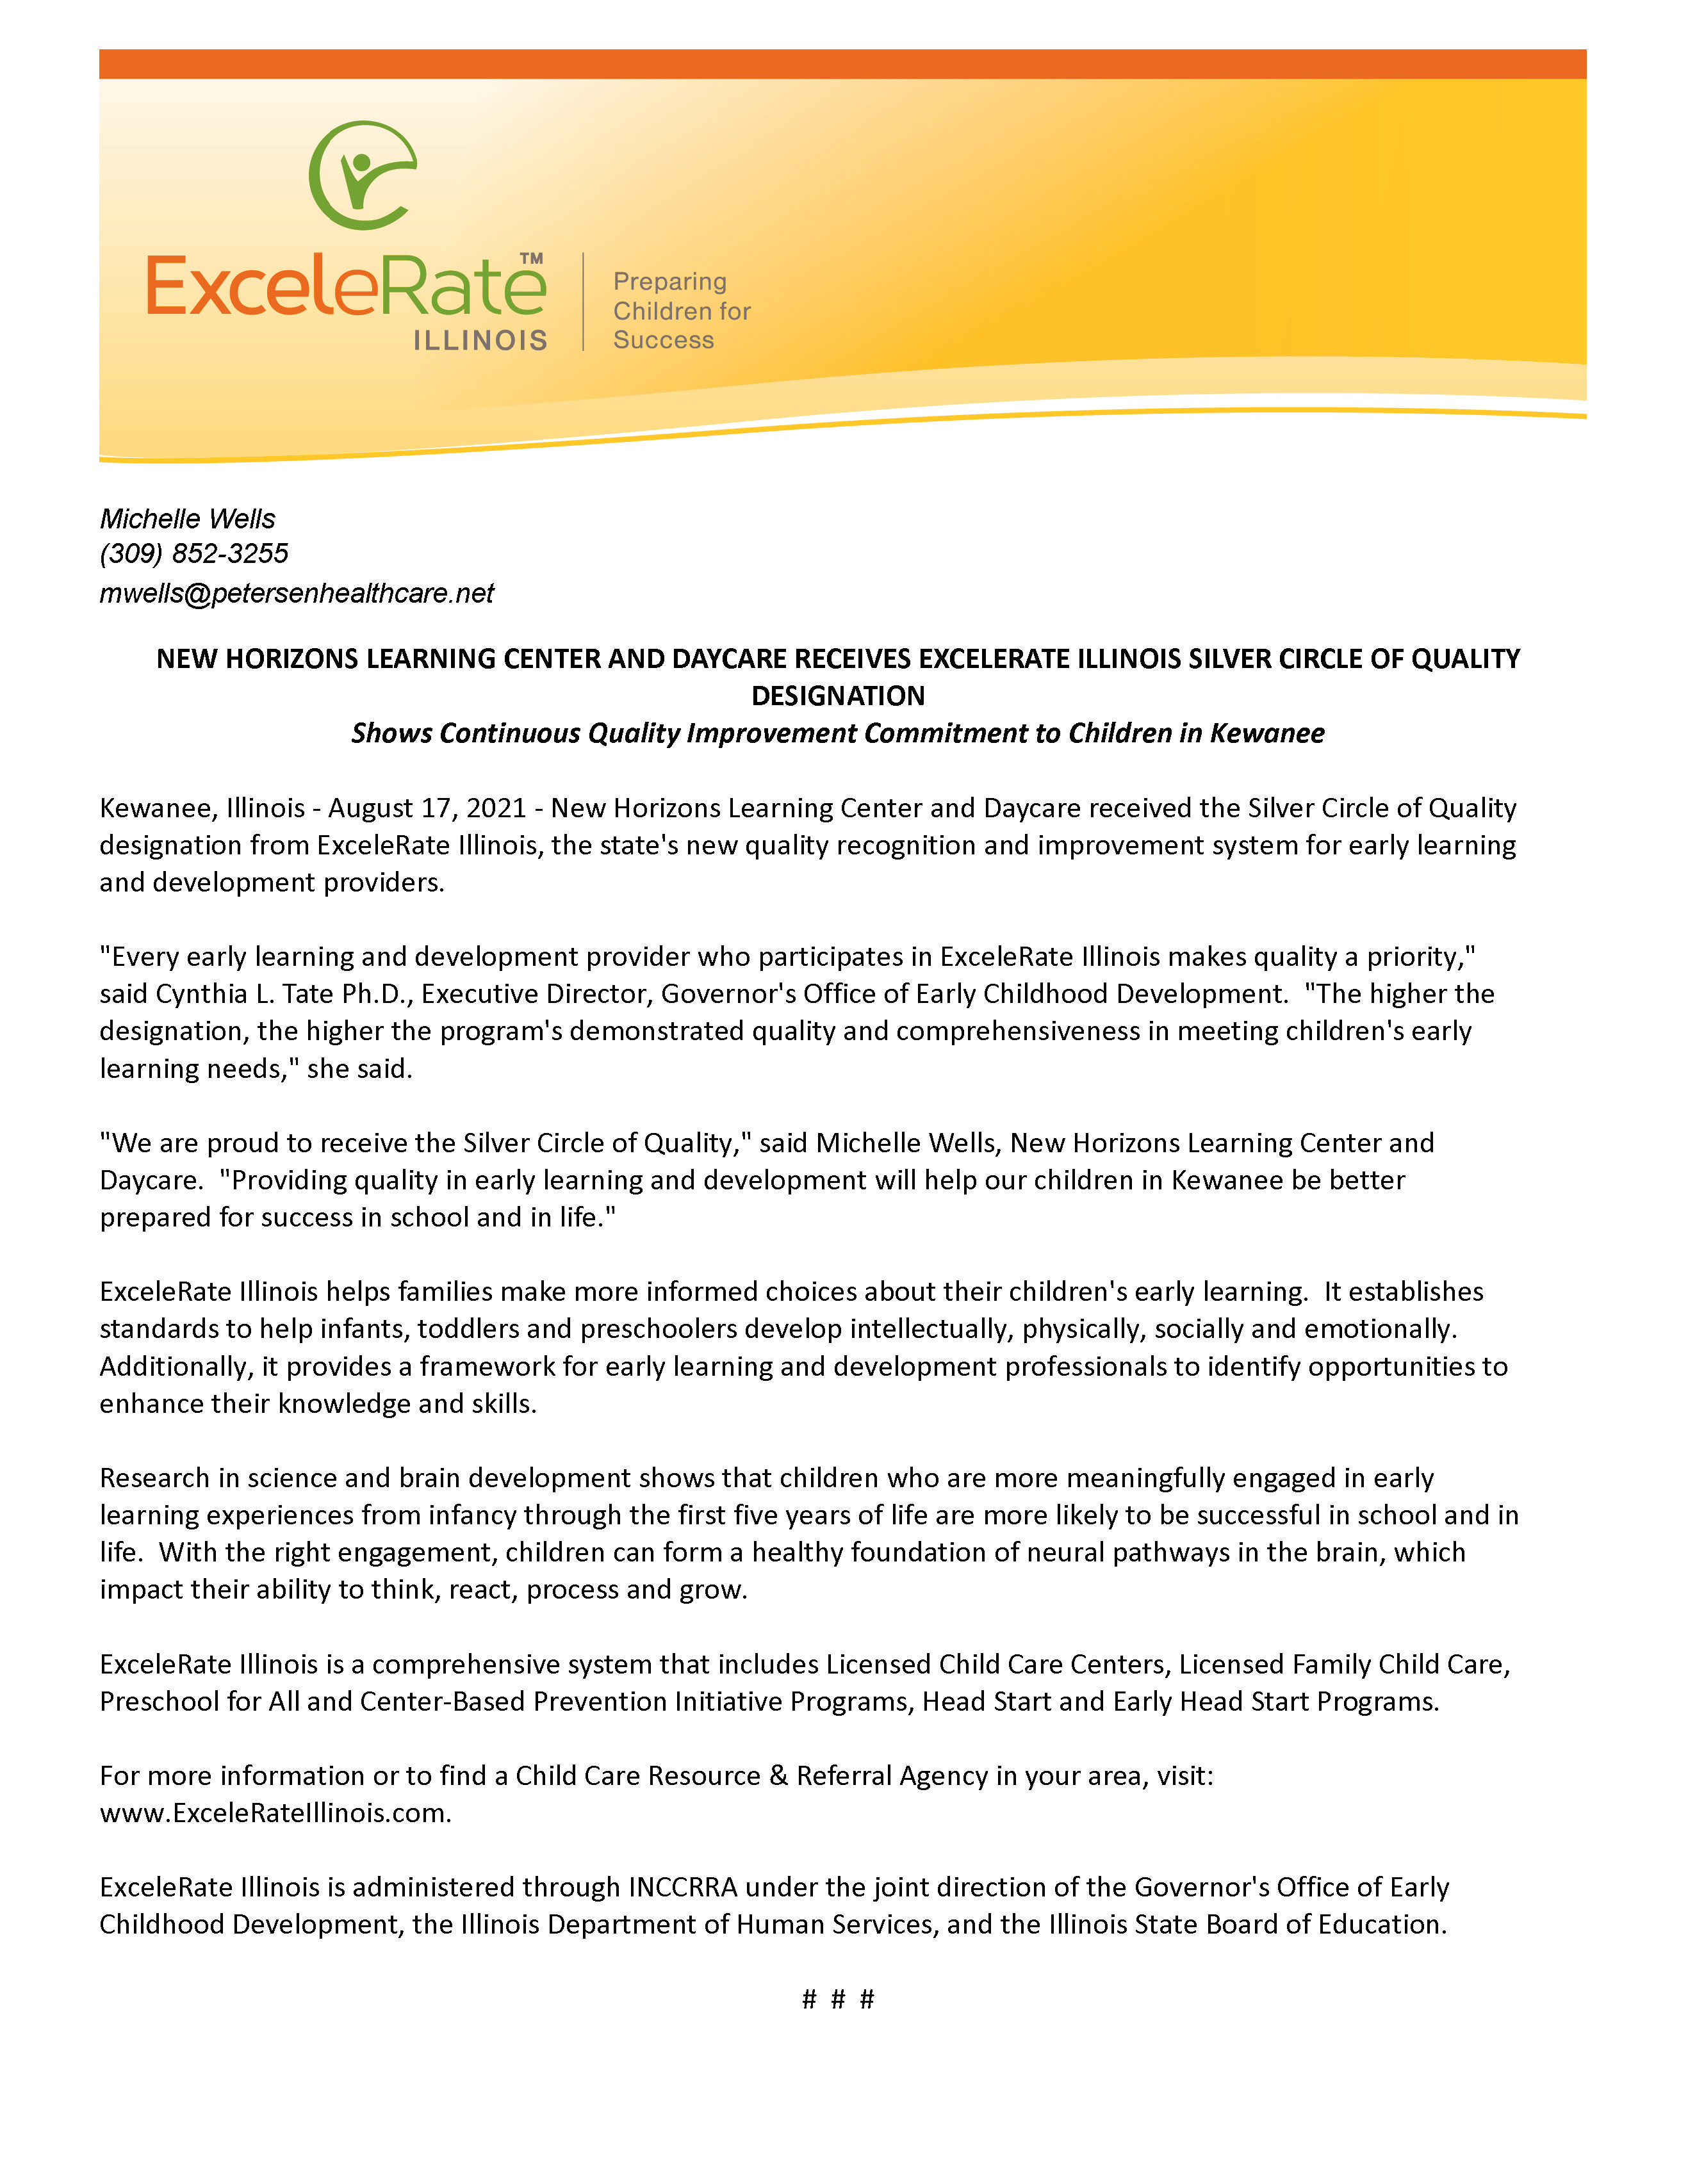 Press Release - NEW HORIZONS LEARNING CENTER AND DAYCARE